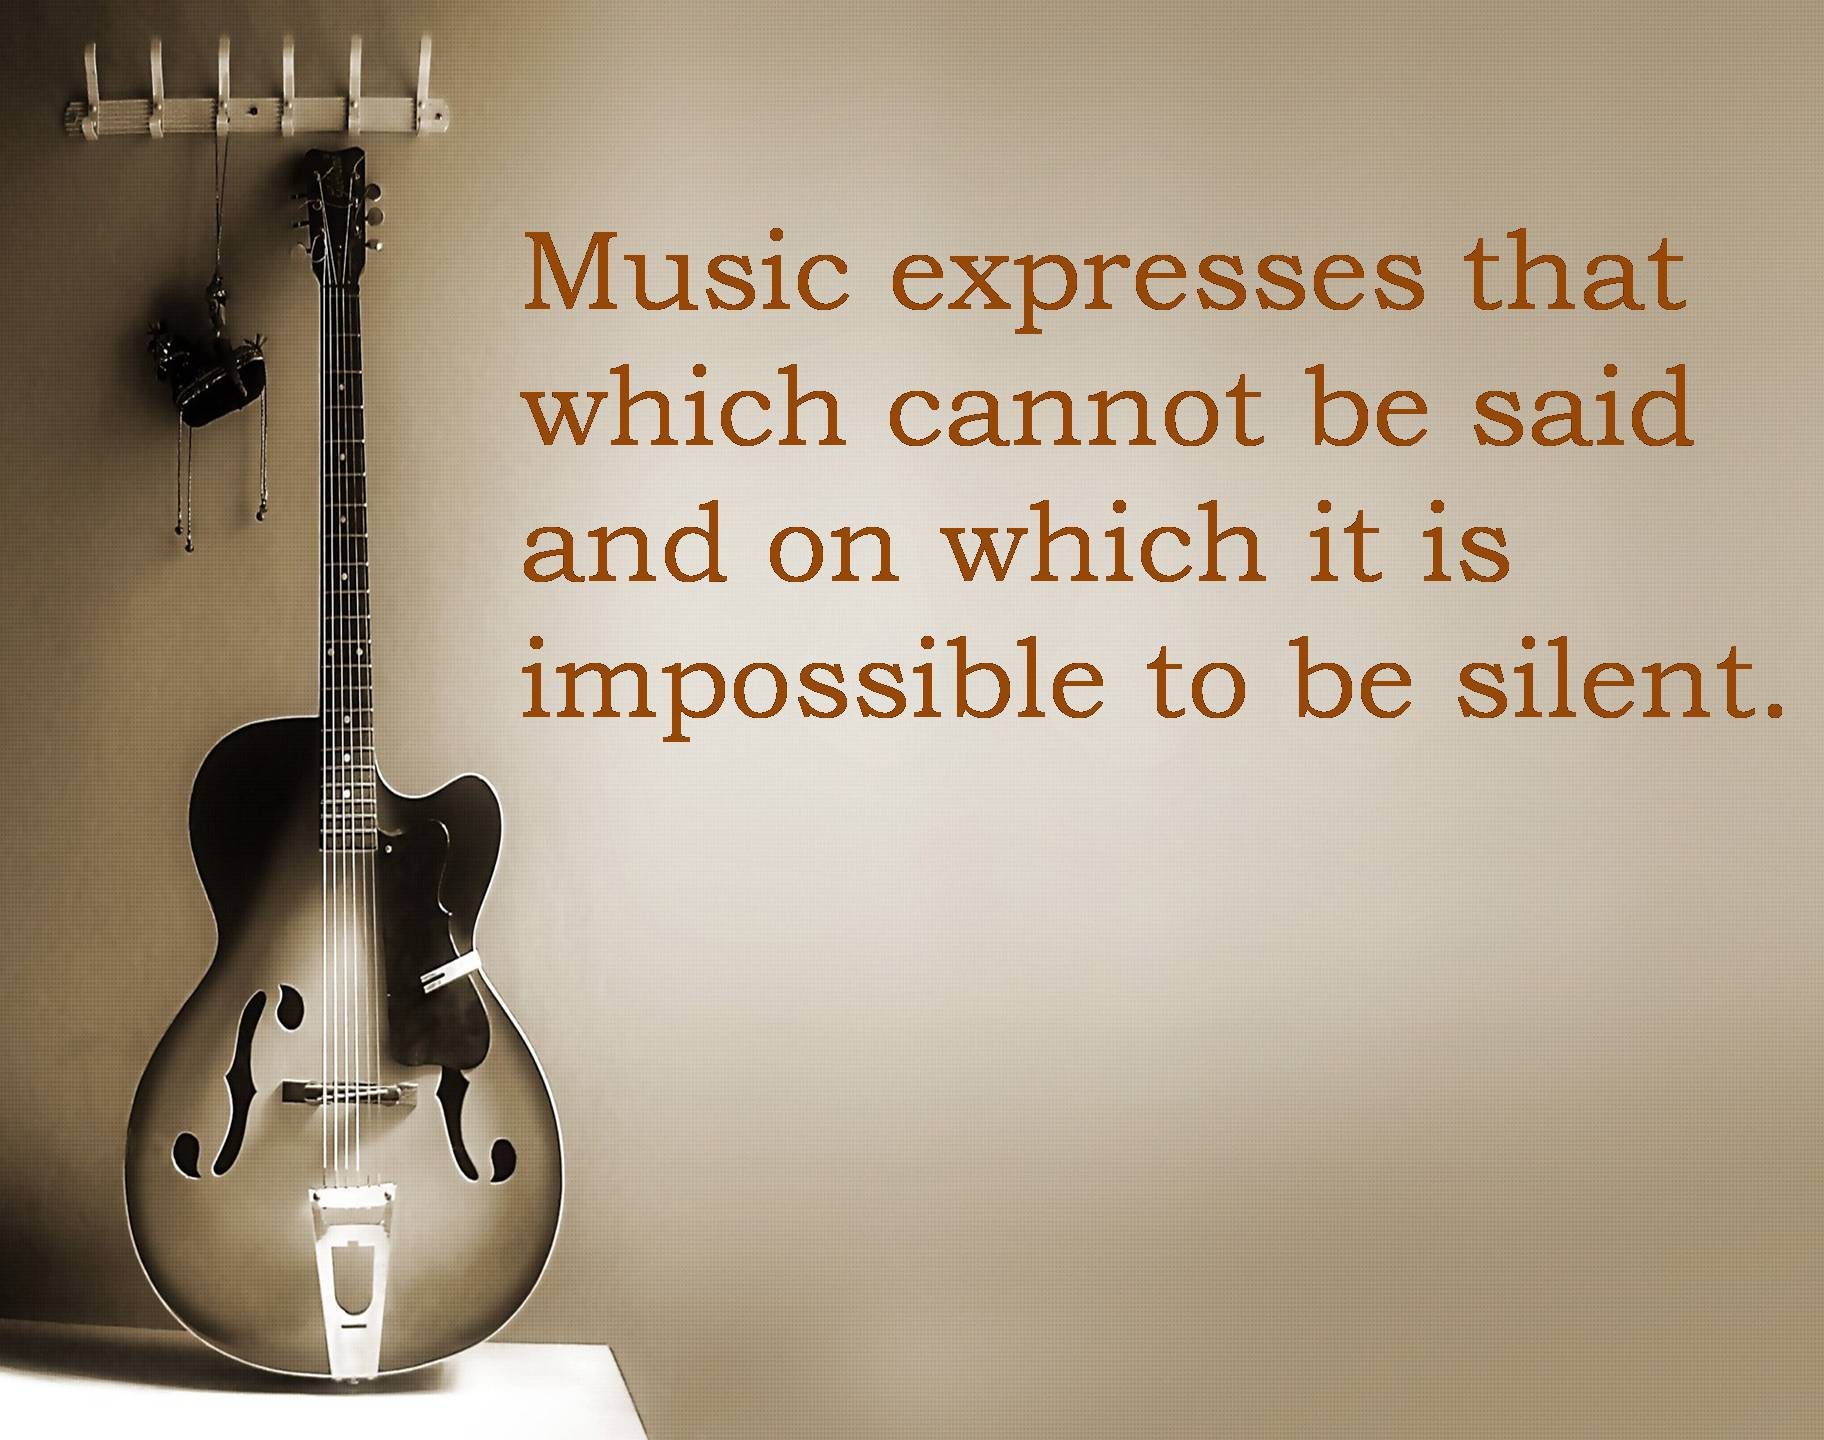 Quotes And Icons Images Music Quote 2 Hd Wallpaper And Background